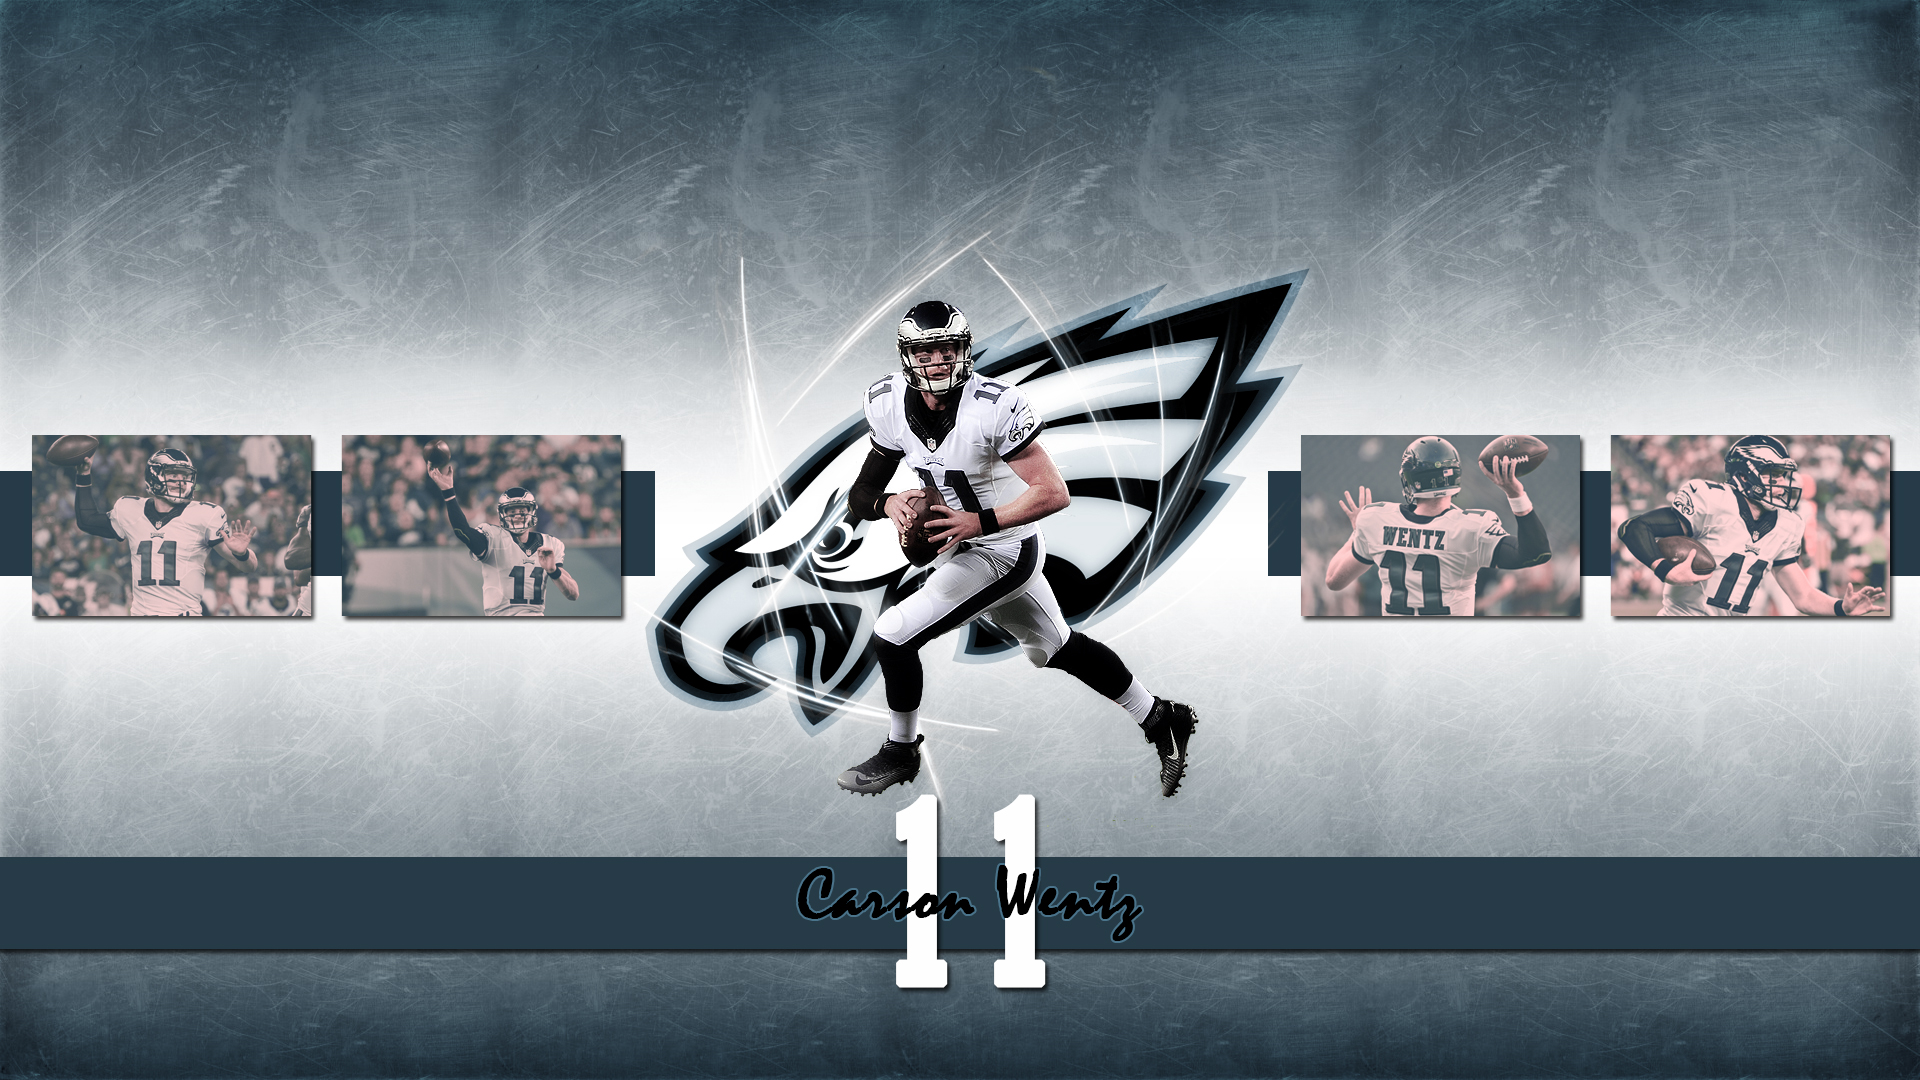 Download Carson Wentz Classic by iNfacTion [1920x1080] 99 1920x1080